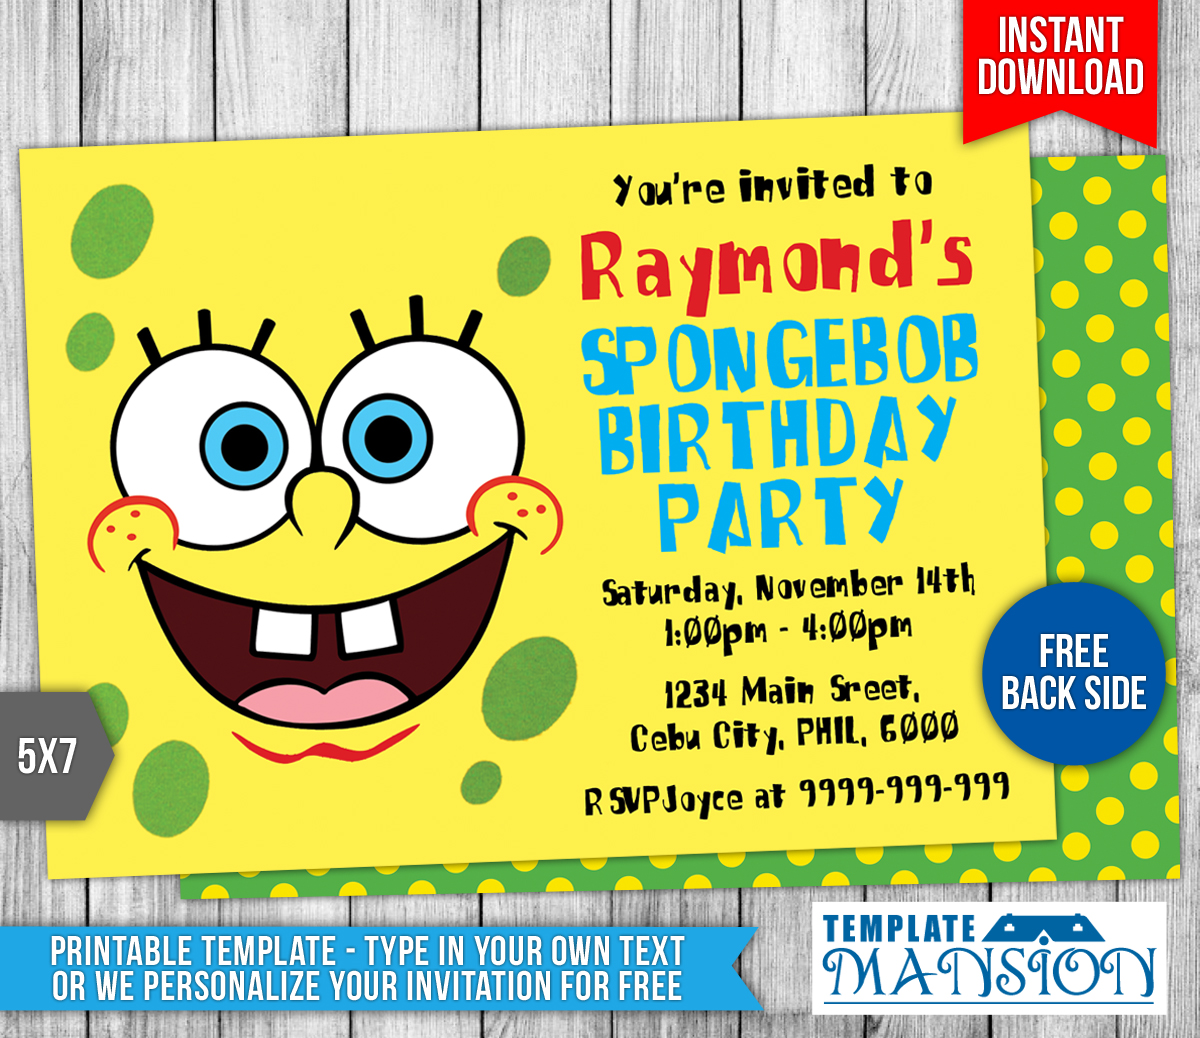 Spongebob Birthday Party Invitations with adorable invitation ideas